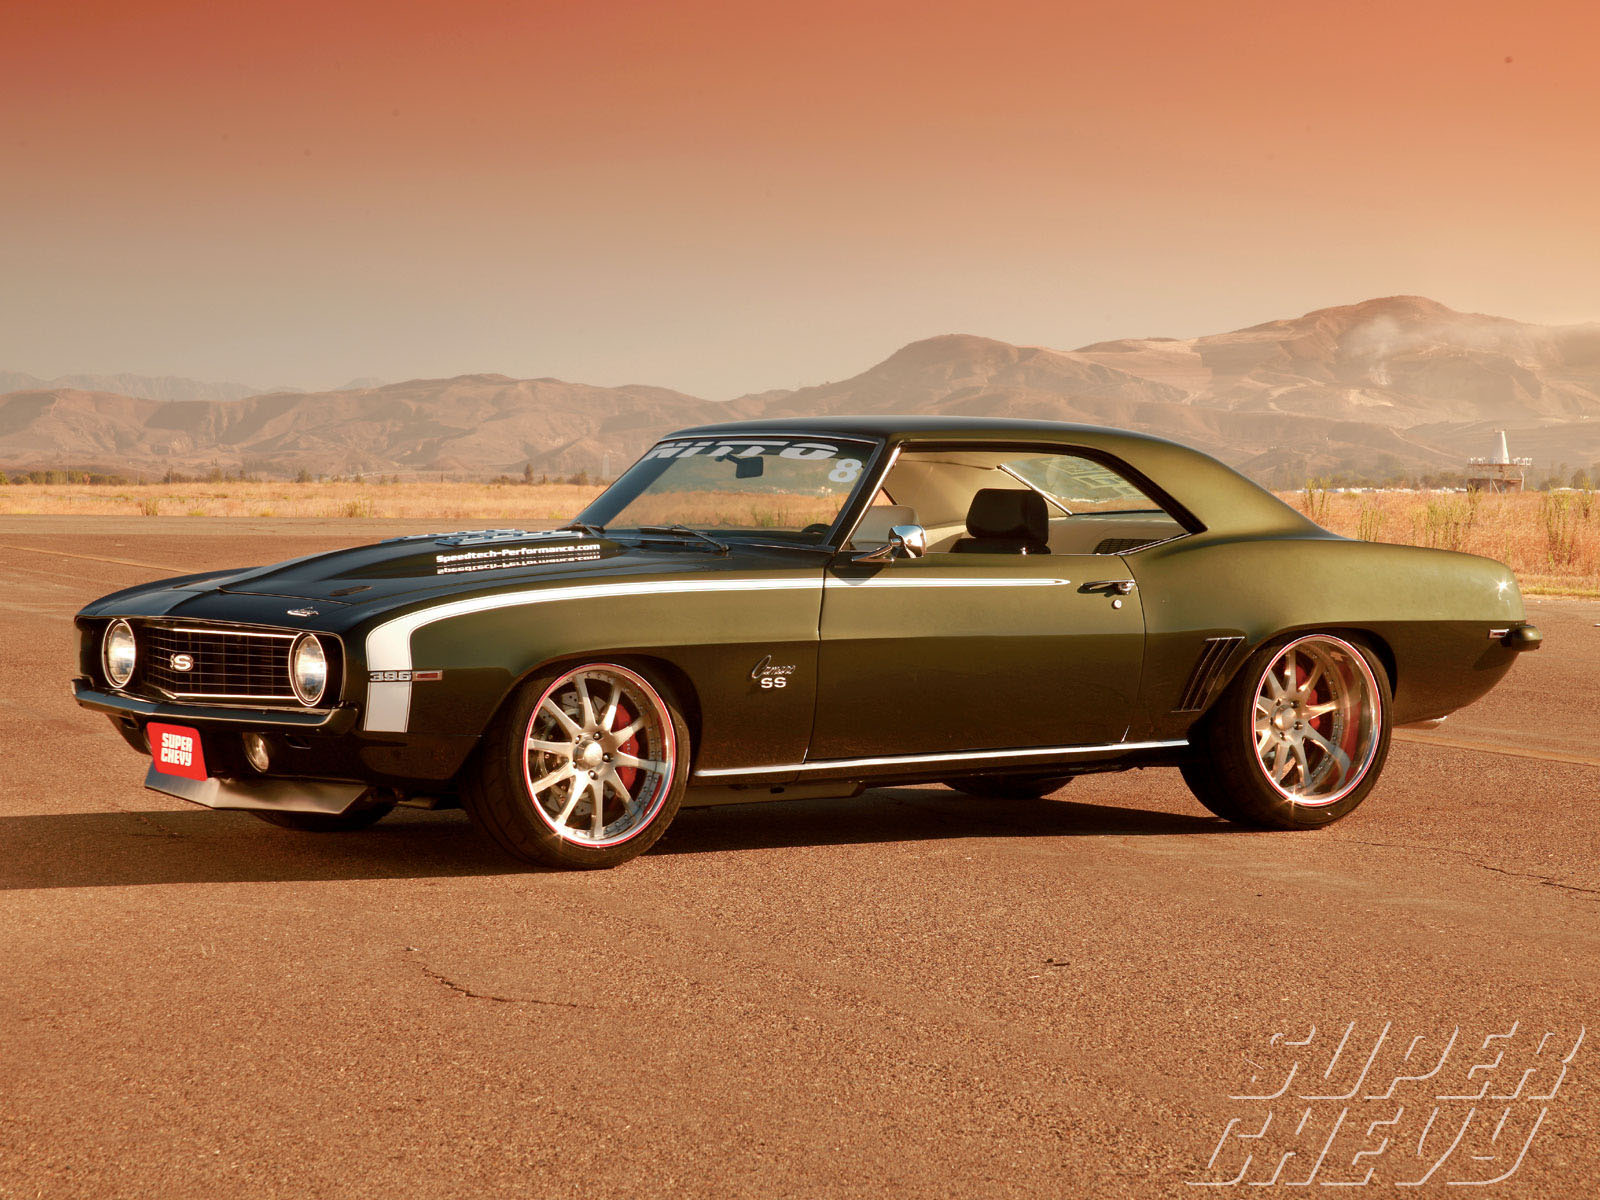 1969 Chevy Camaro SS HD Wallpaper Image Detail CarsWallpaperNet 1600x1200